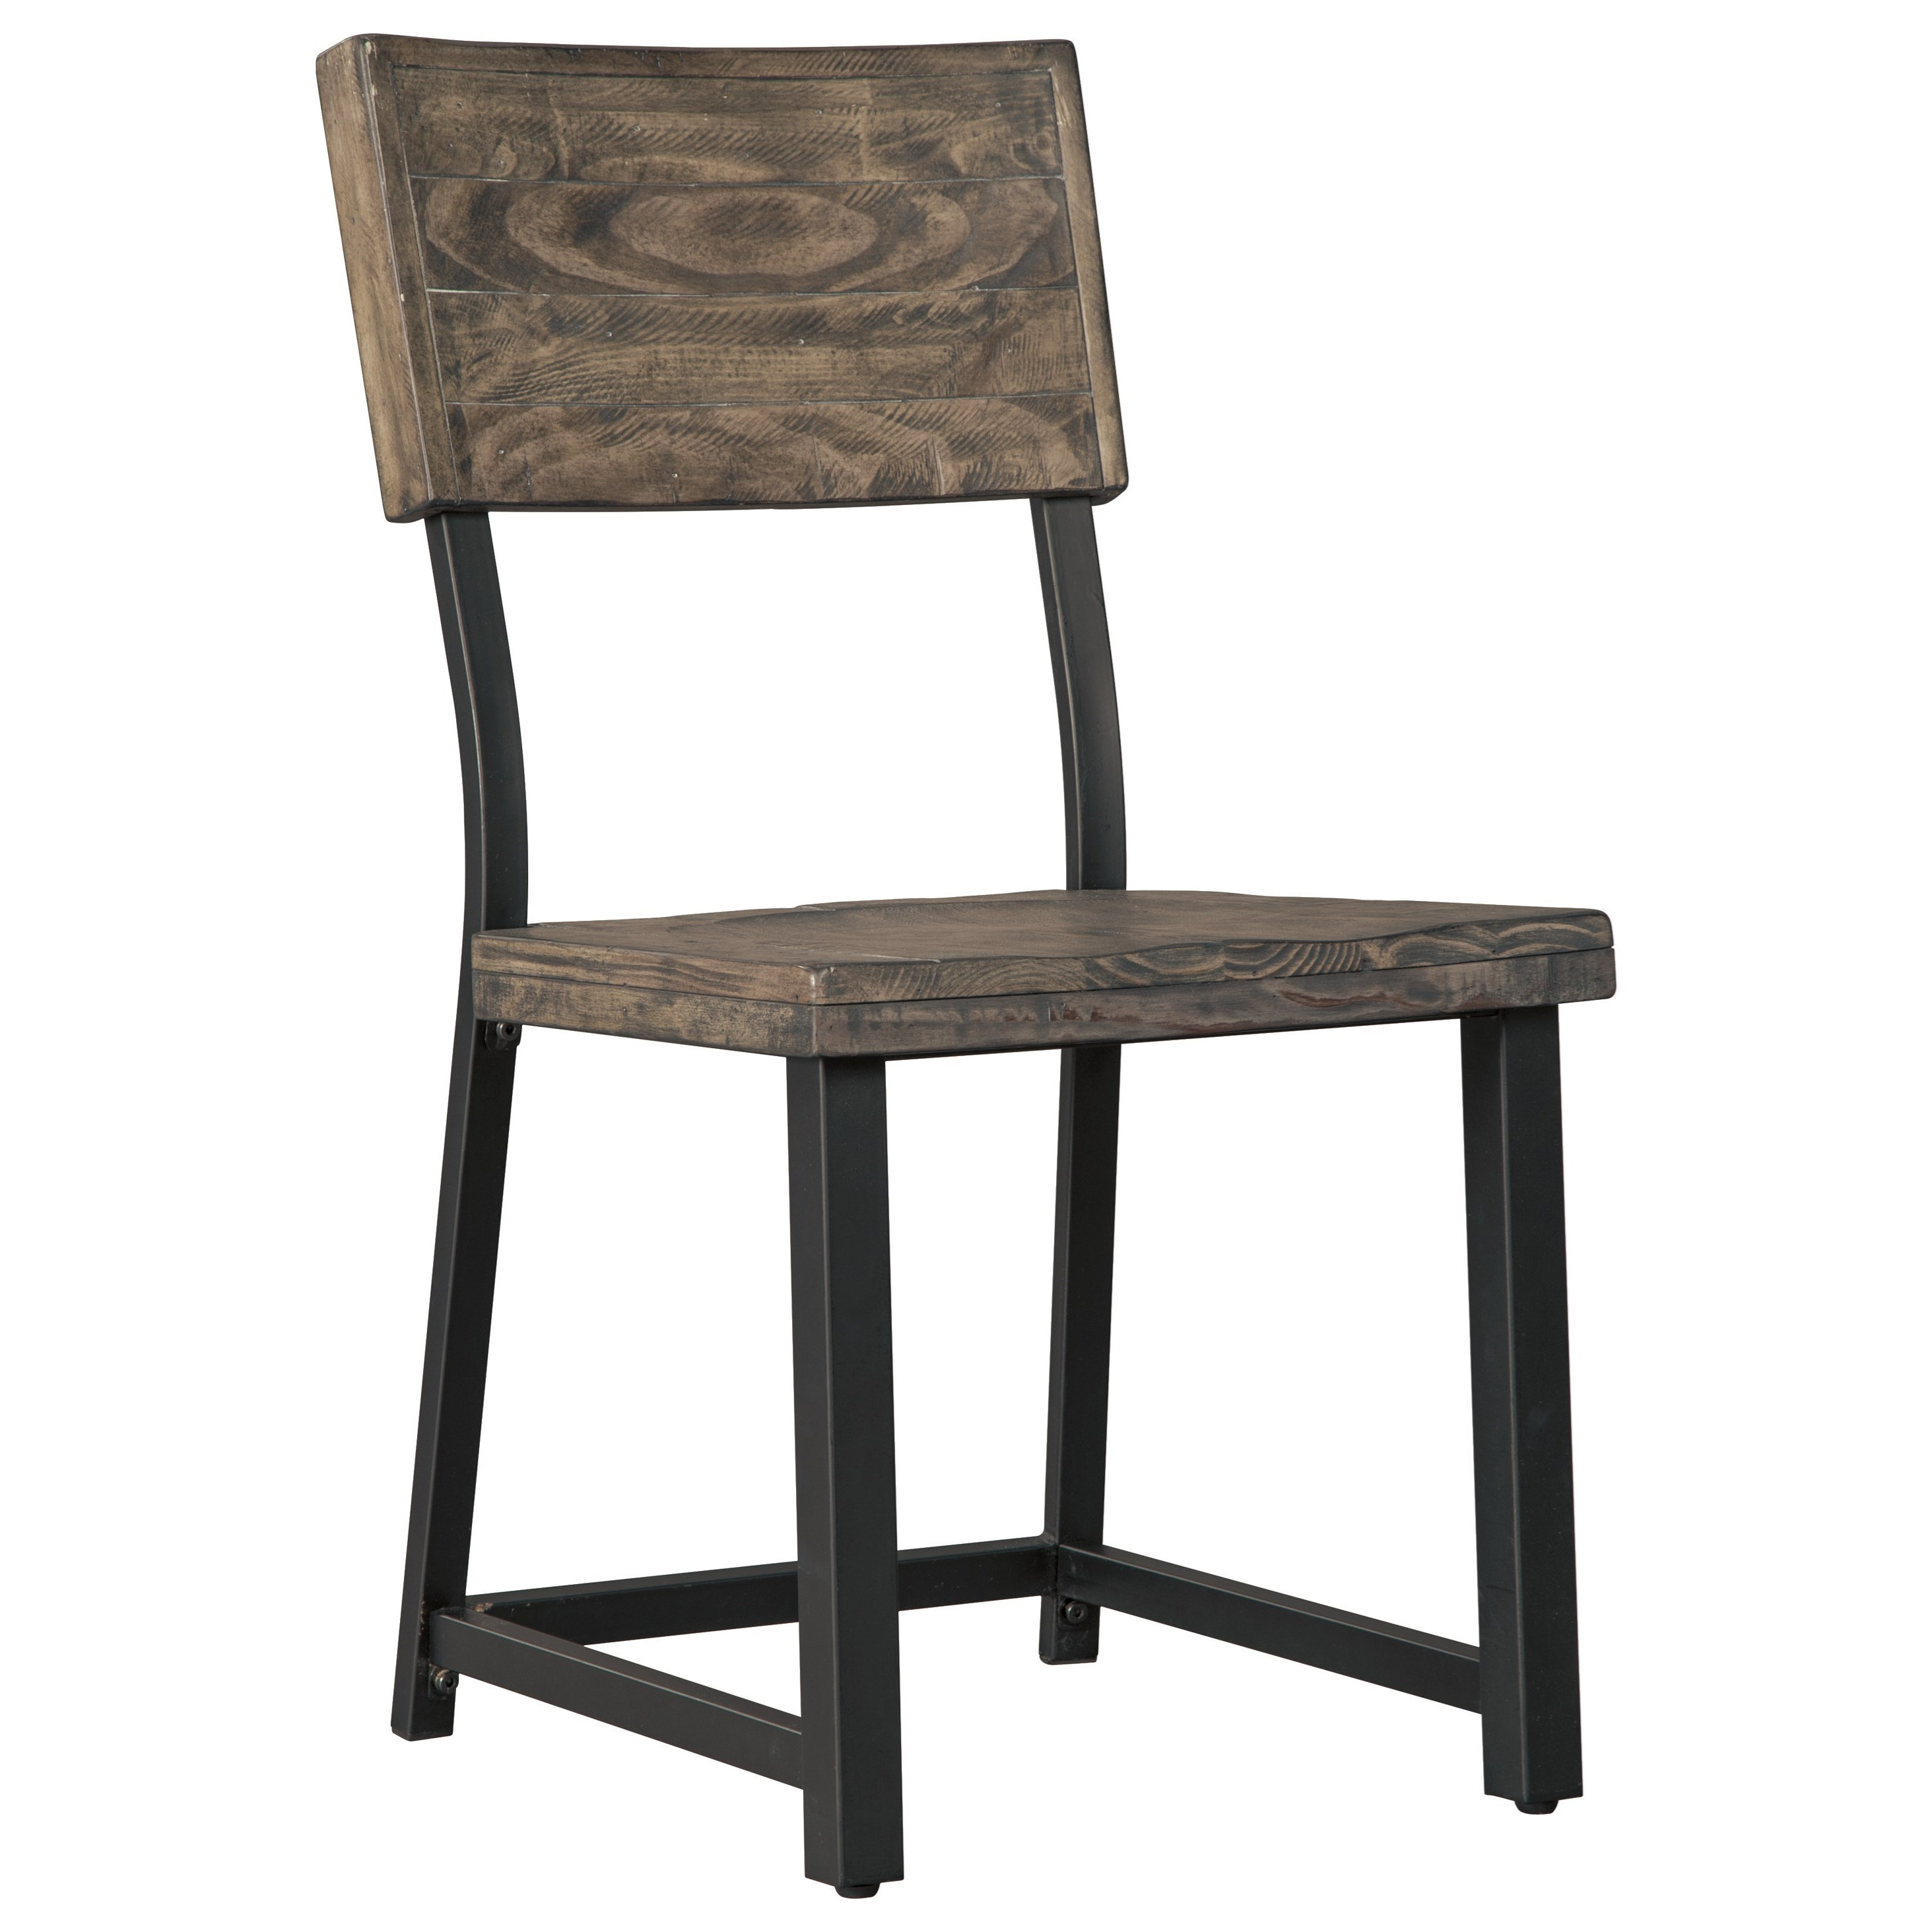 Cazentine Dining Room Side Chair by Signature Design by Ashley at Lapeer Furniture & Mattress Center